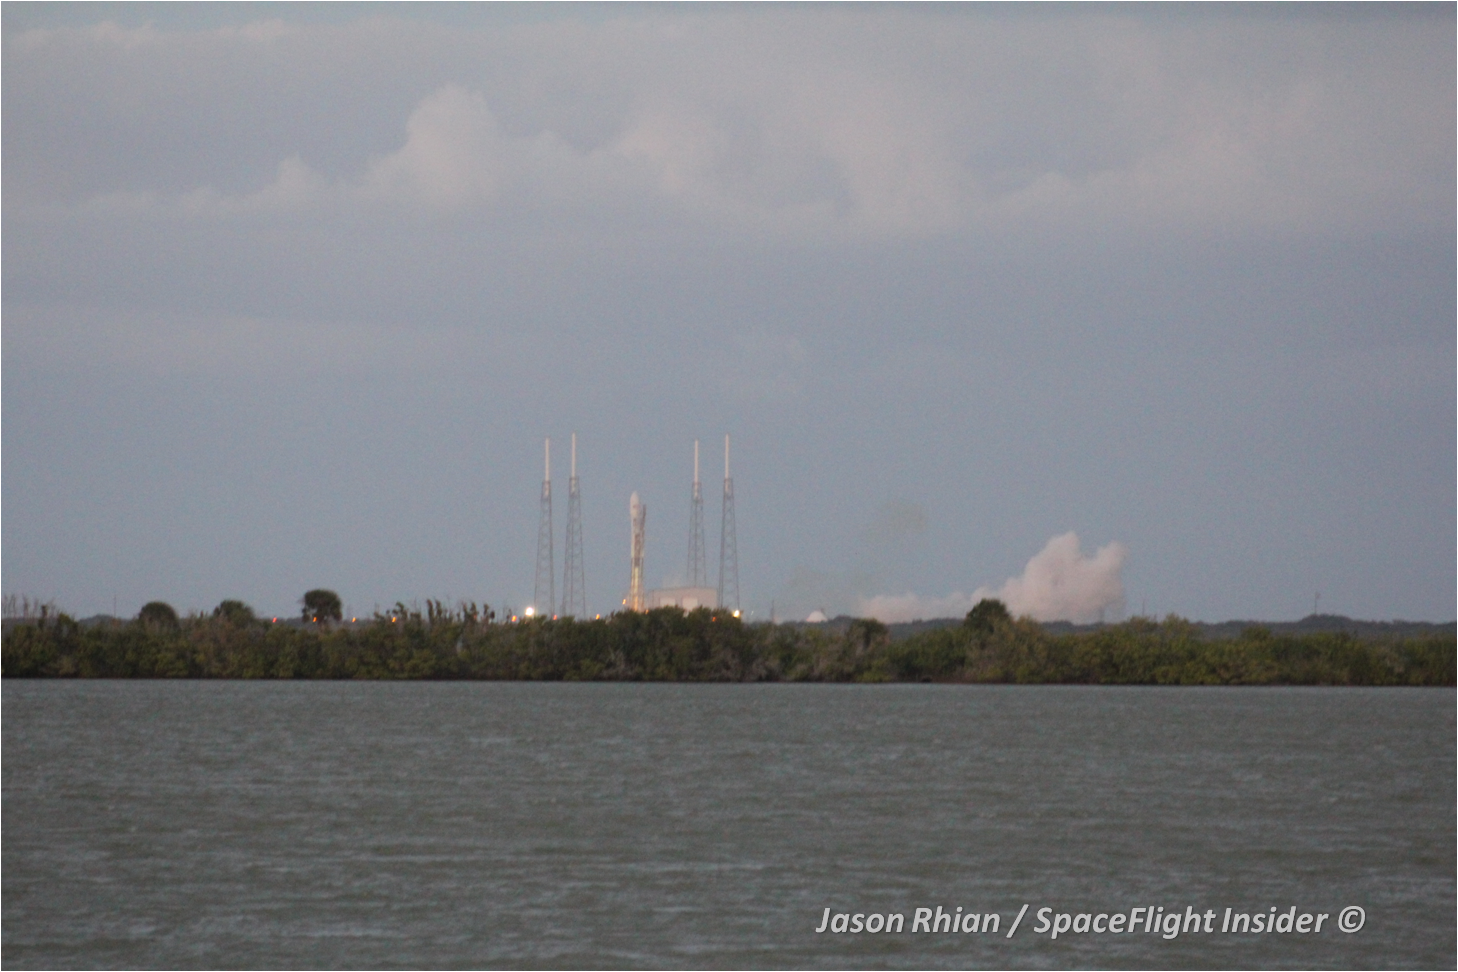 SpaceX almost achieved launch, but two seconds after the first launch attempt at 5:39 p.m. EST - the rocket's onboard computer detected an issue and shut the rocket down. Photo Credit: Jason Rhian / SpaceFlight Insider